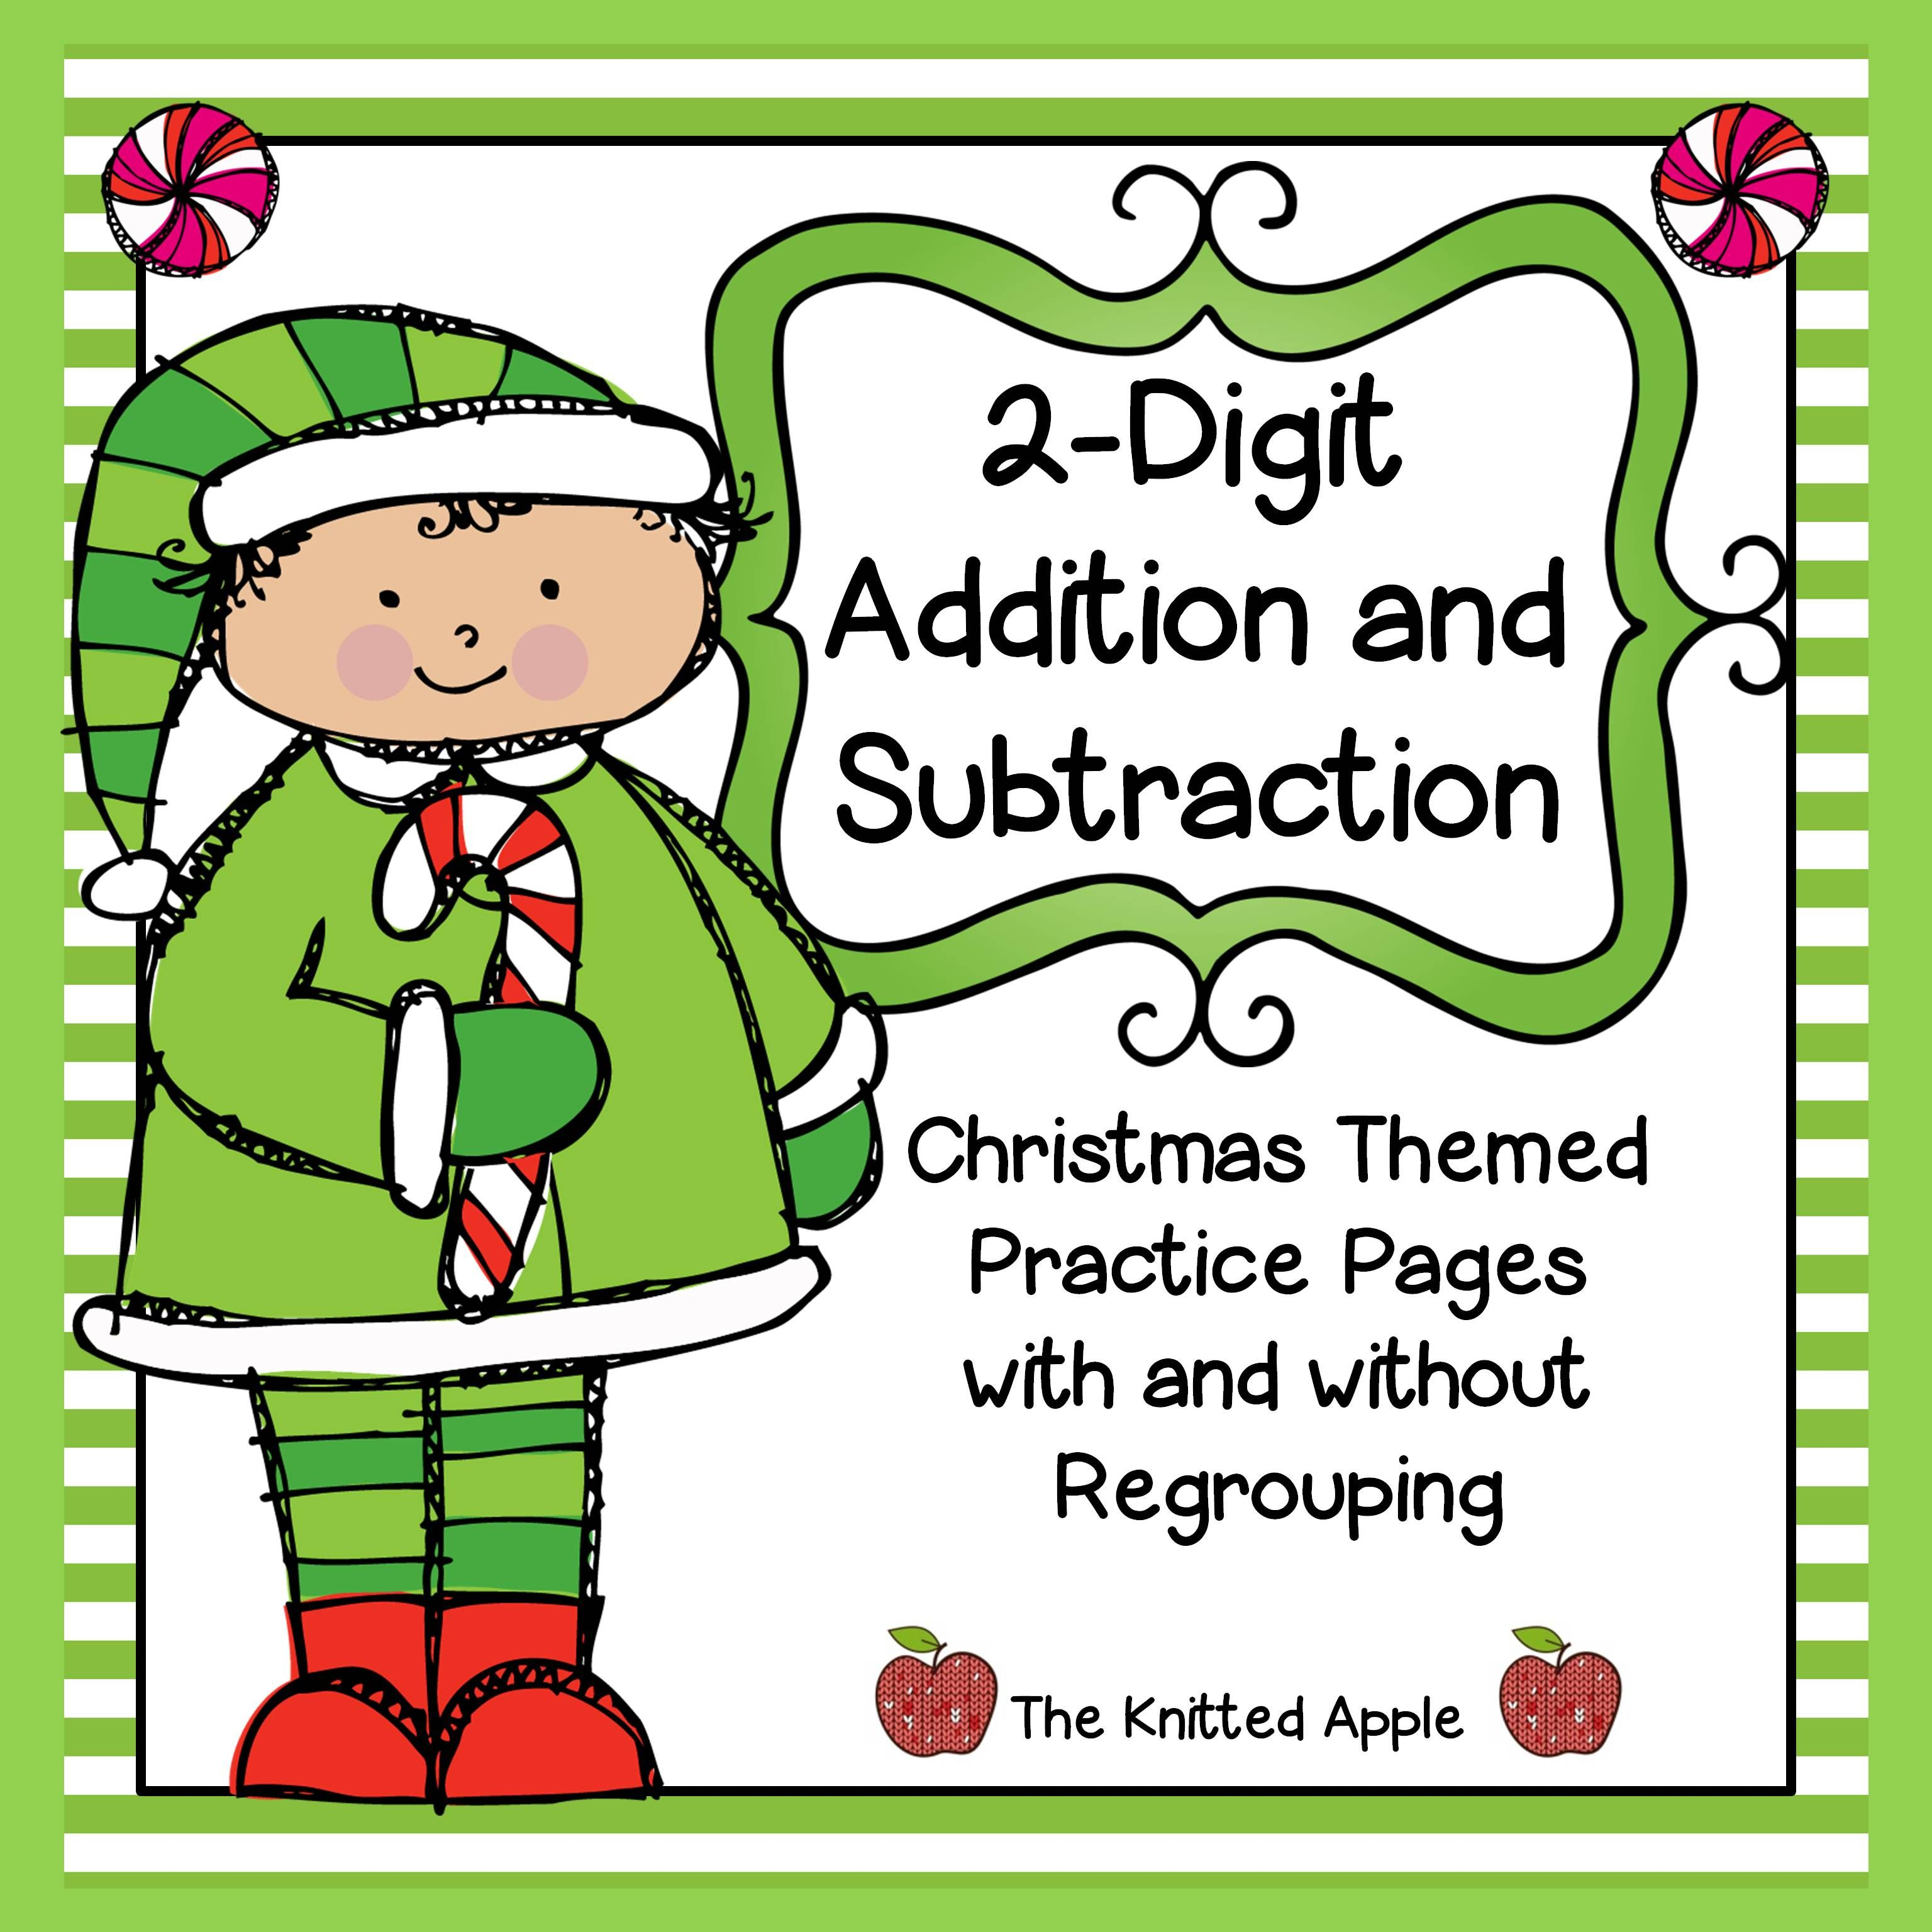 2-Digit Addition and Subtraction with and without Regrouping ...